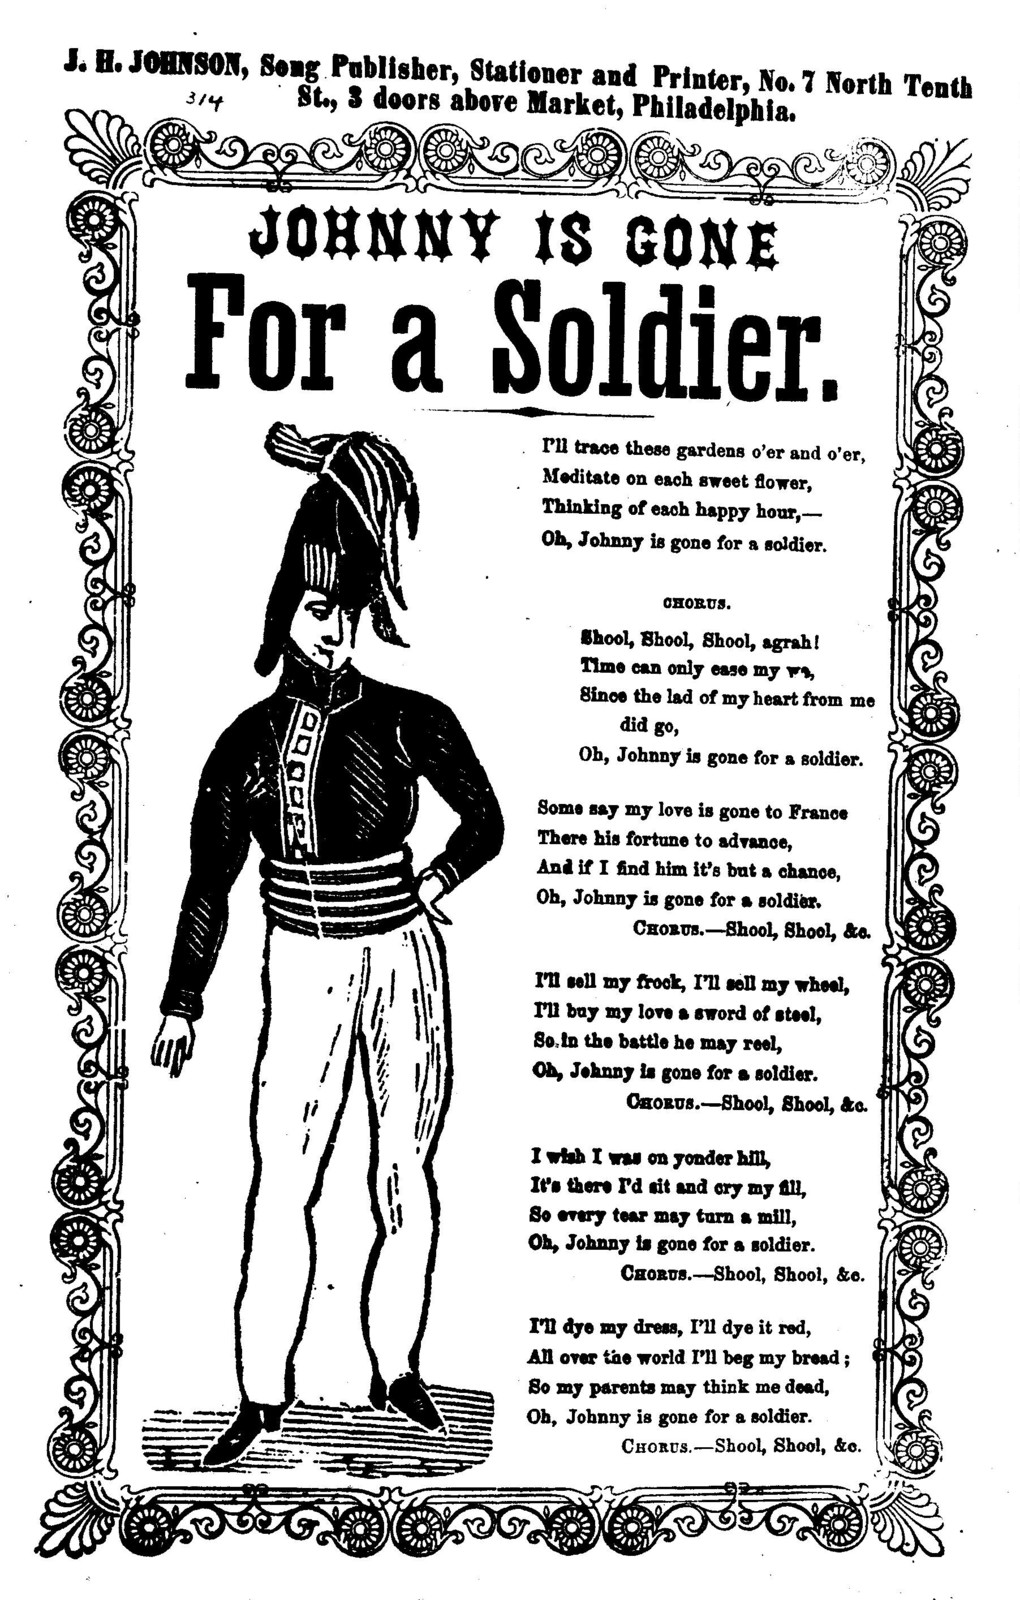 Johnny is gone for a soldier. J. H. Johnson, Song Publisher, ... Phila